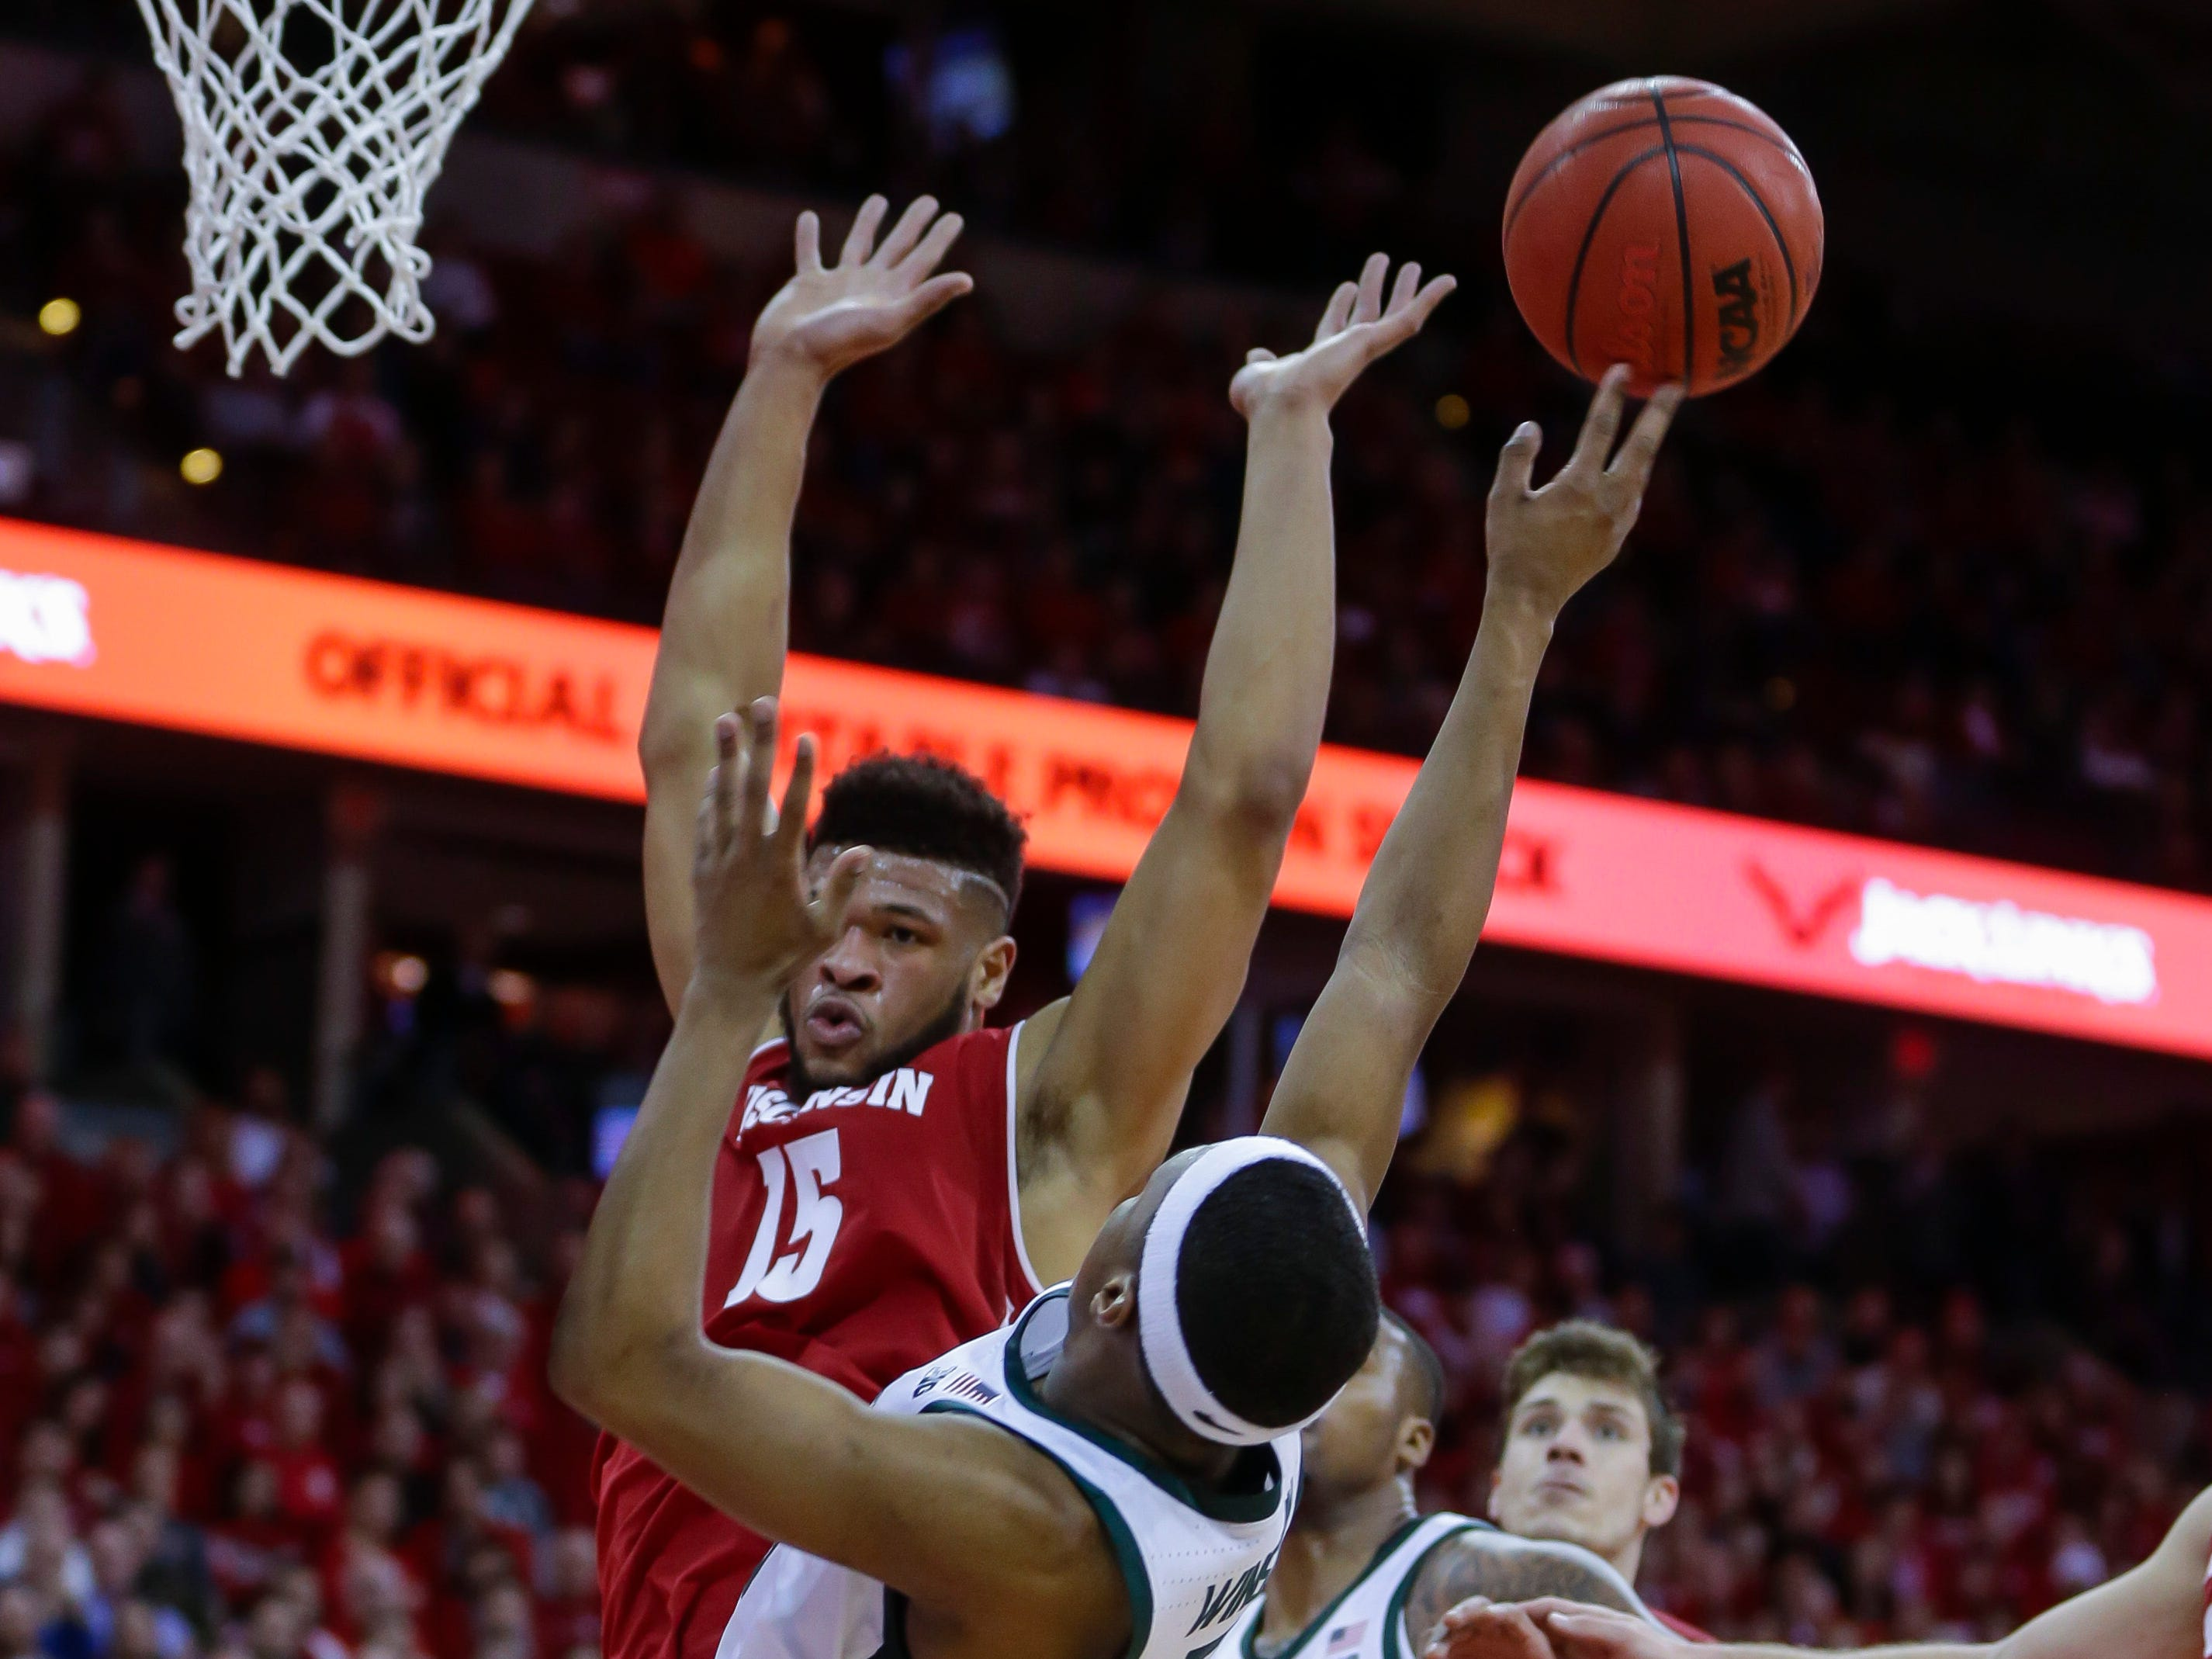 Michigan States's Kyle Ahrens (0) shoots as Wisconsin's Charles Thomas (15) defends during the first half.